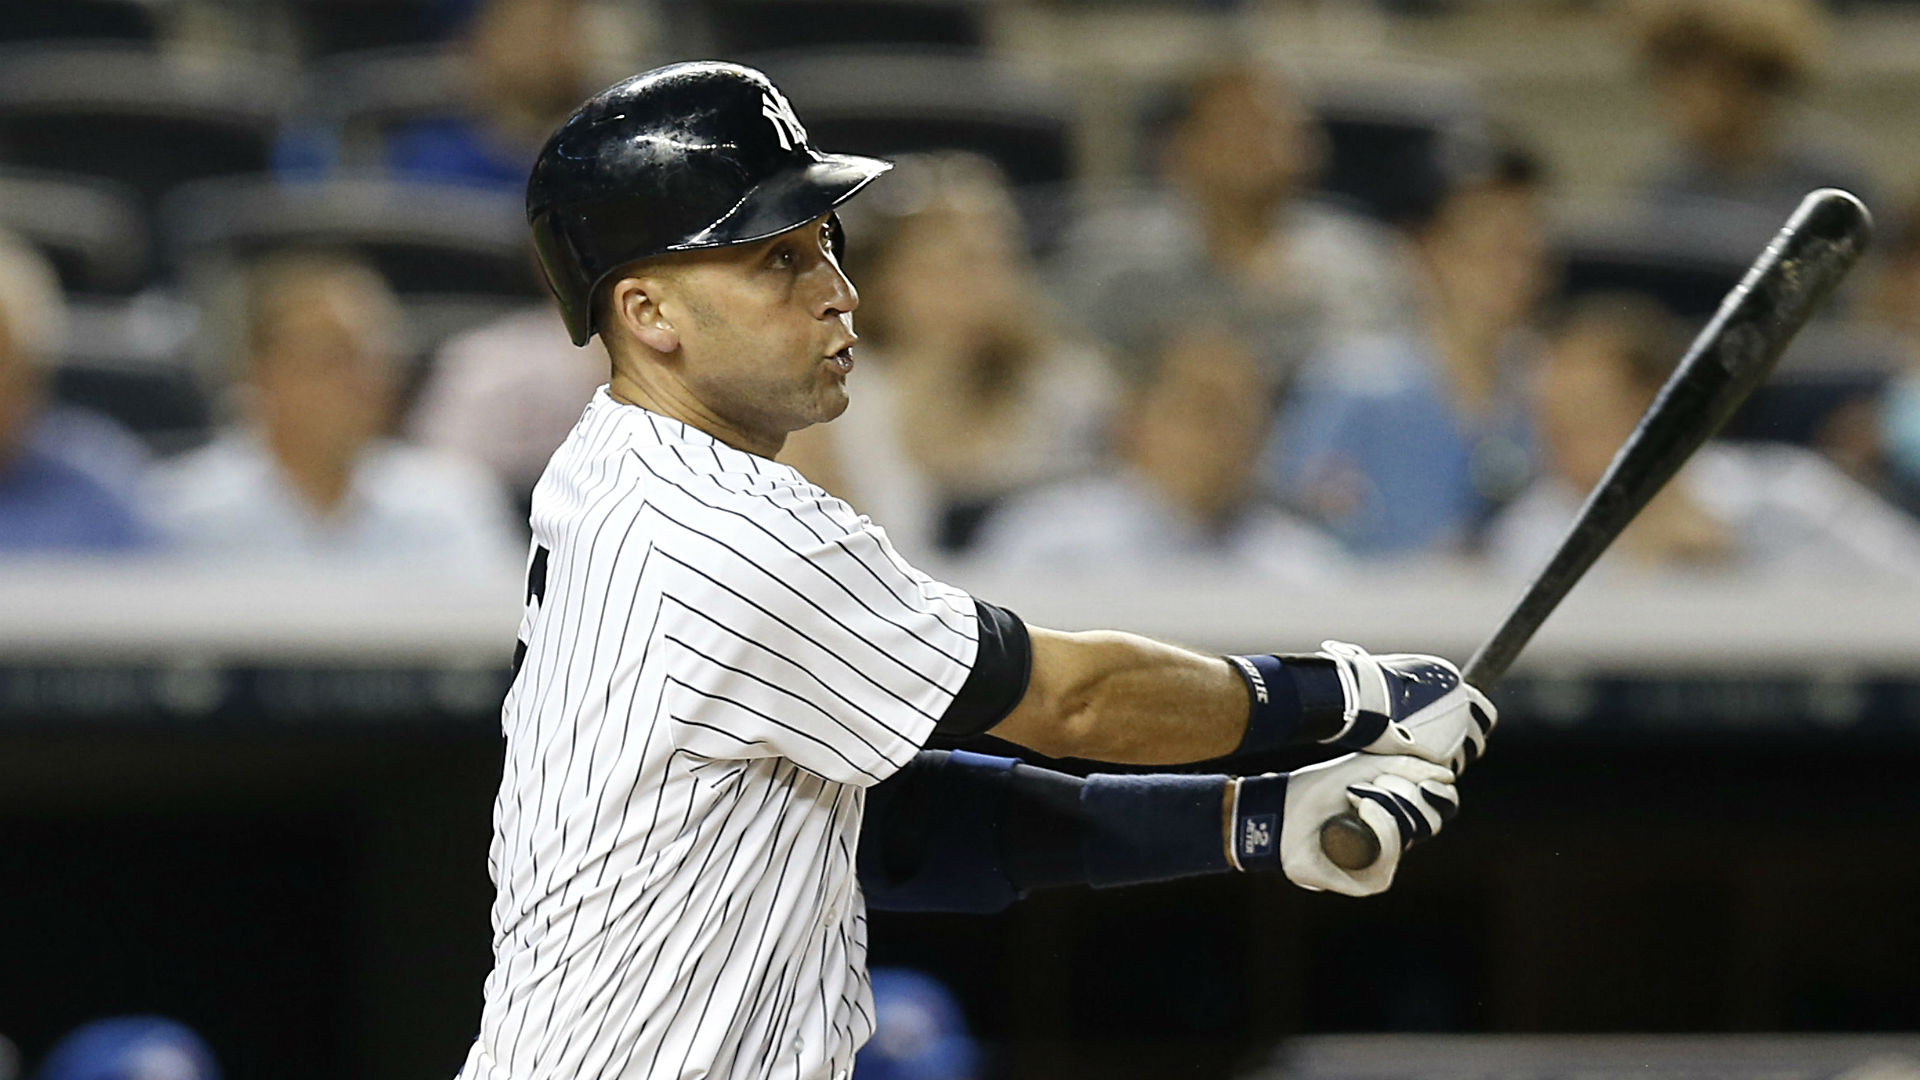 Daily fantasy baseball lineup: Wednesday's buy/sell picks in DraftKings leagues